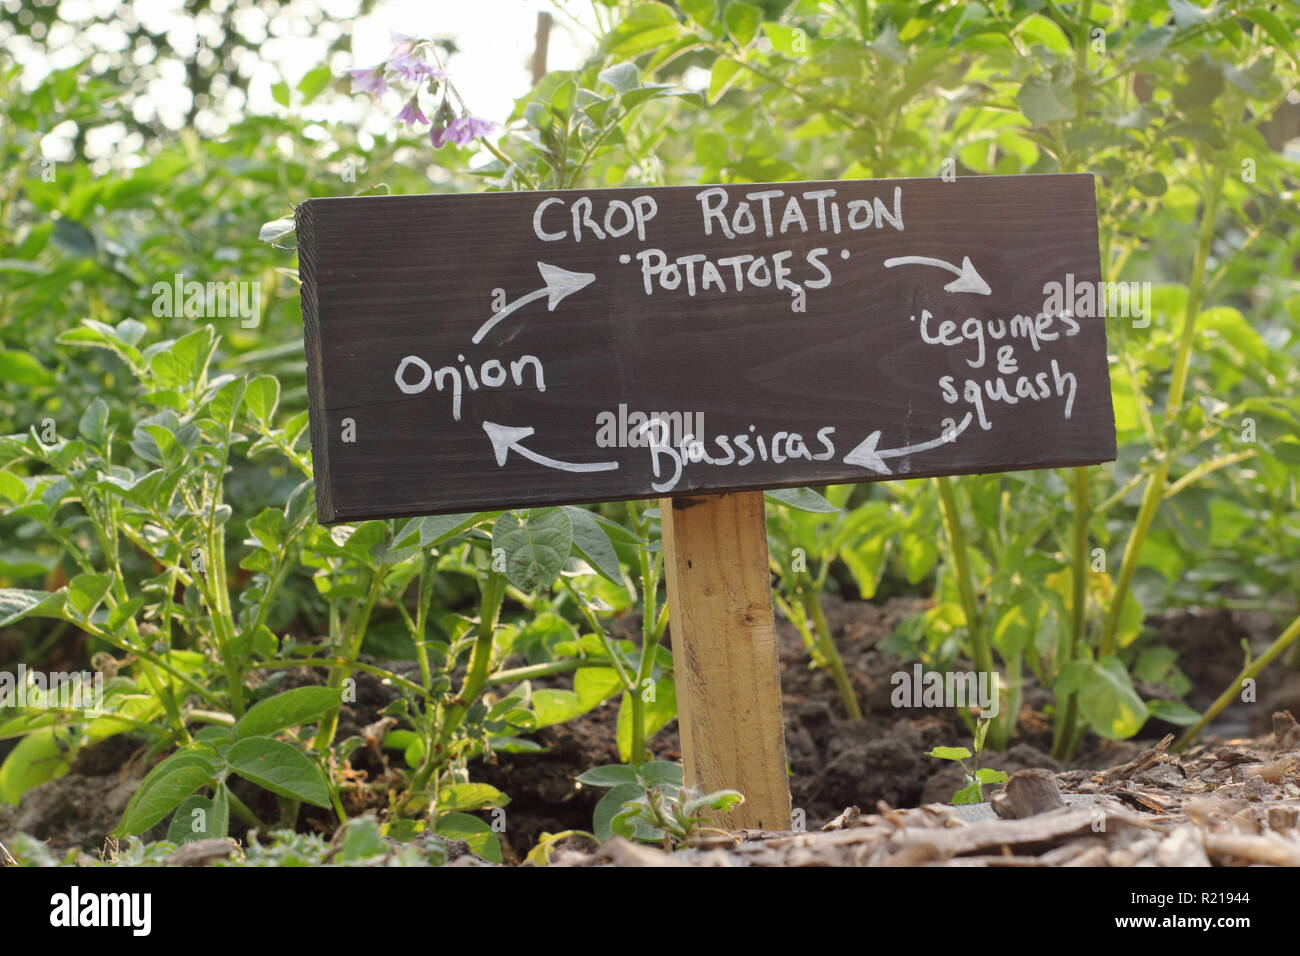 Sign depicting four year crop rotation system in an English allotment garden, UK - Stock Image